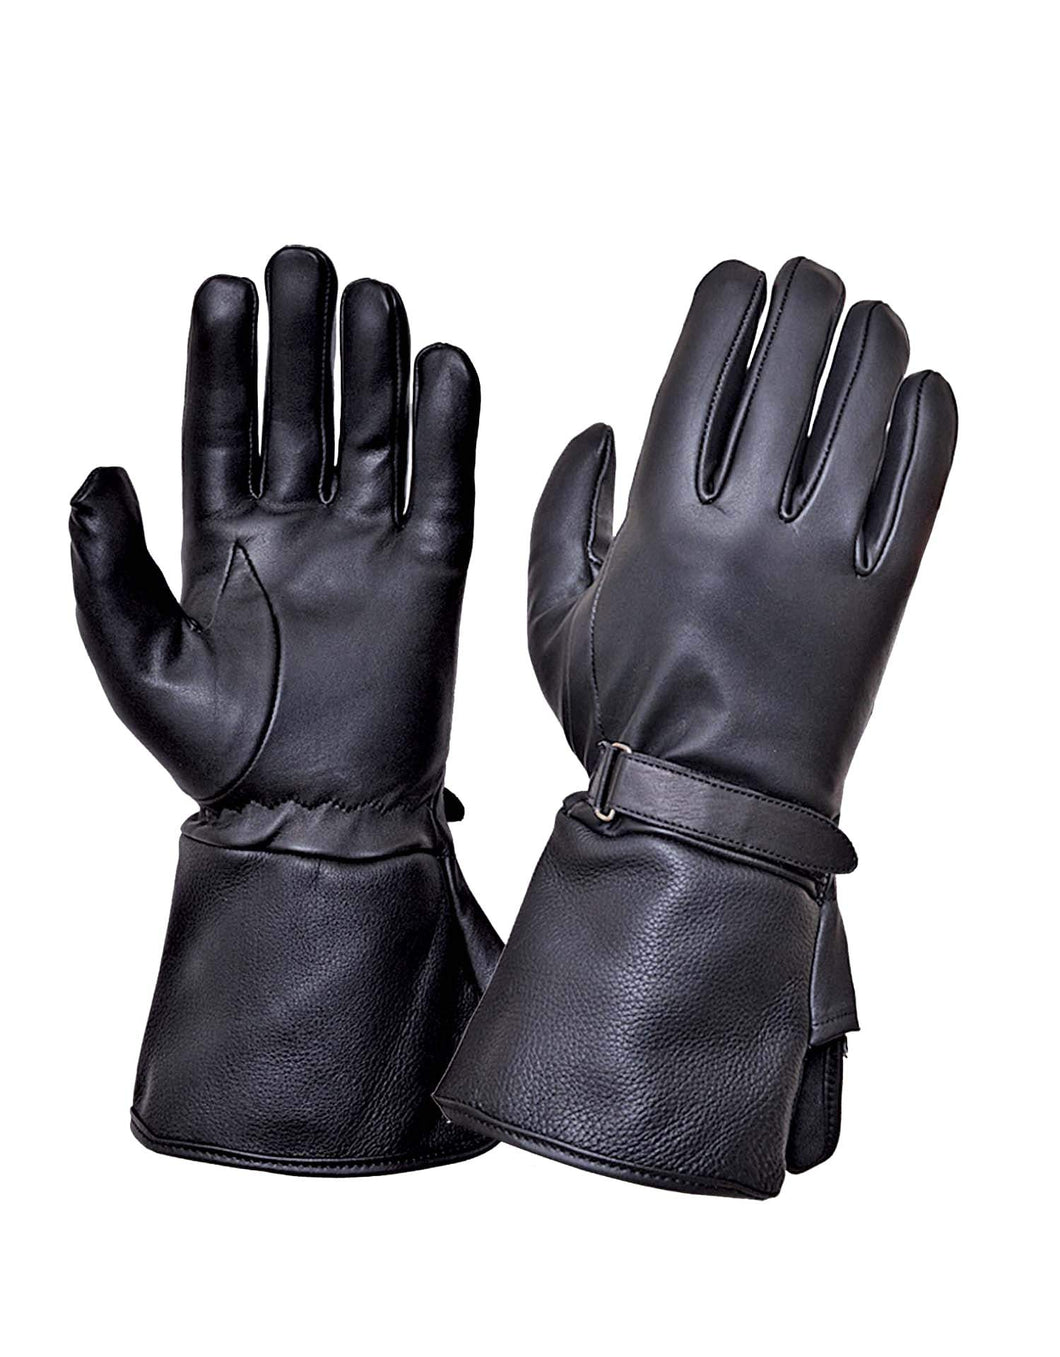 UNIK Gauntlet Leather Gloves - Ghost Rider Leather